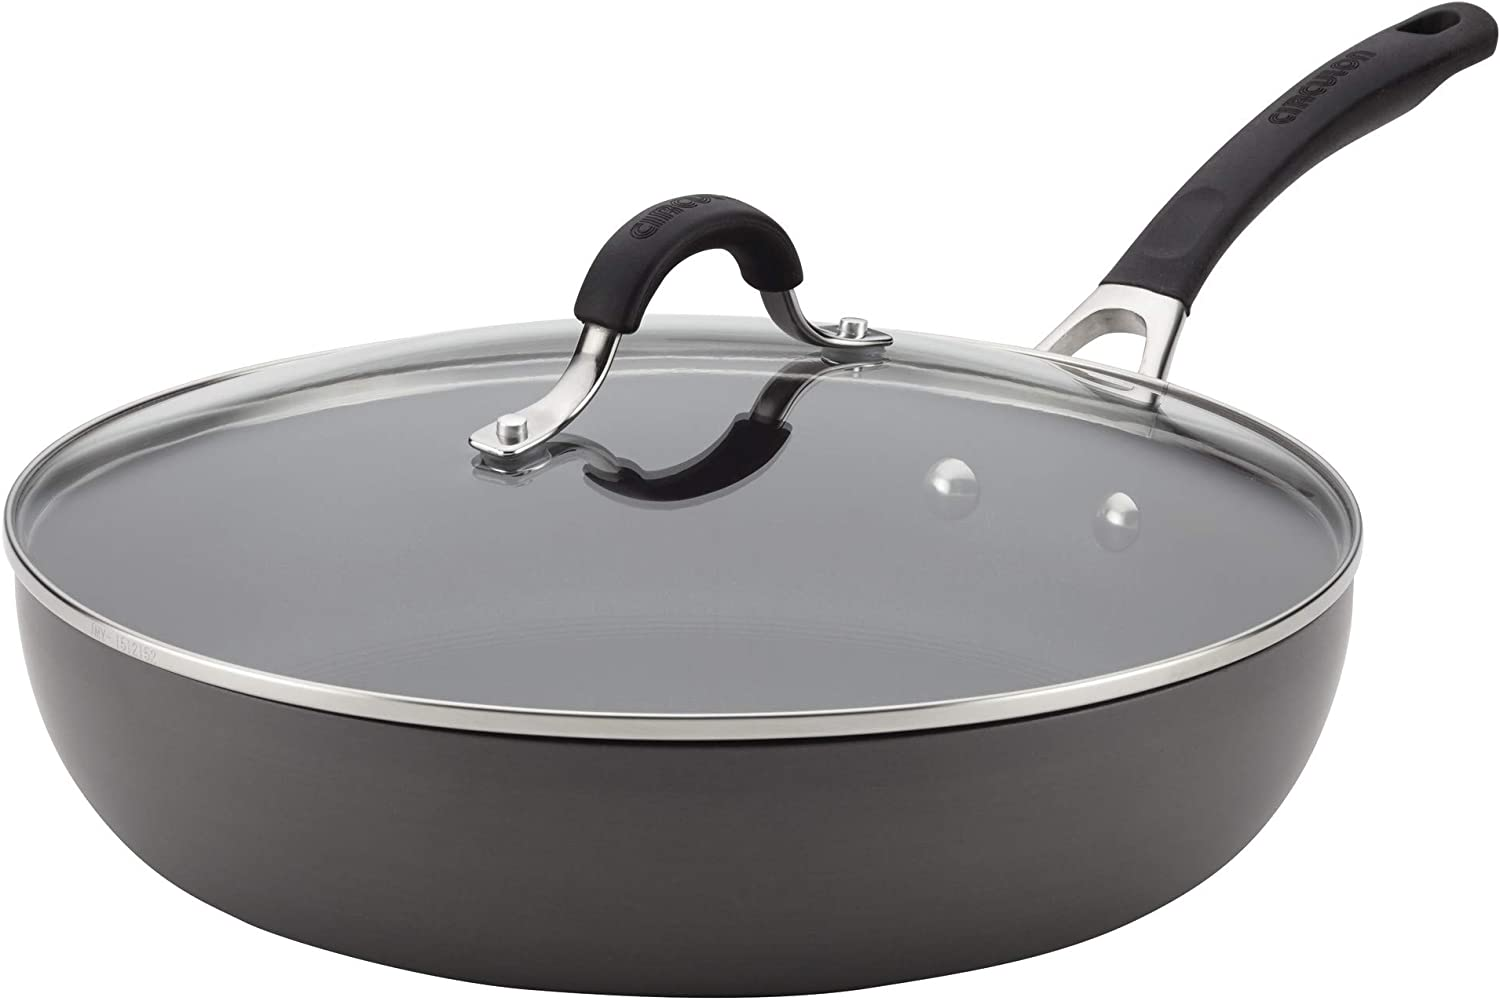 Circulon Innovatum Hard-Anodized 12 Inch Nonstick Deep Skillet with Lid, Light Gray